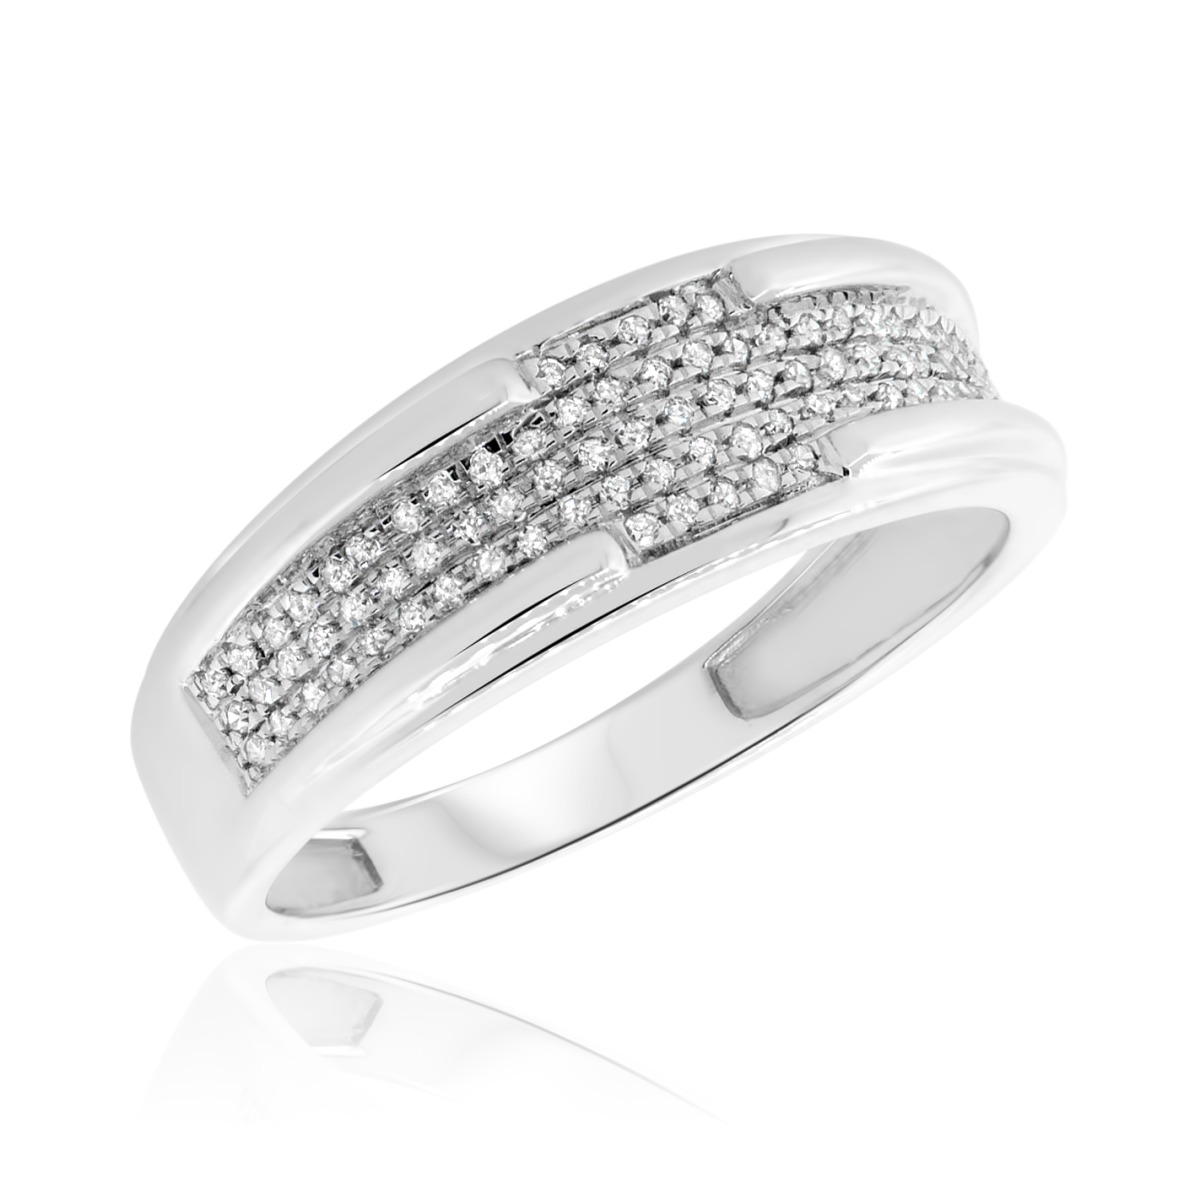 1/5 Carat T.W. Diamond Ladies Wedding Band 14K White Gold